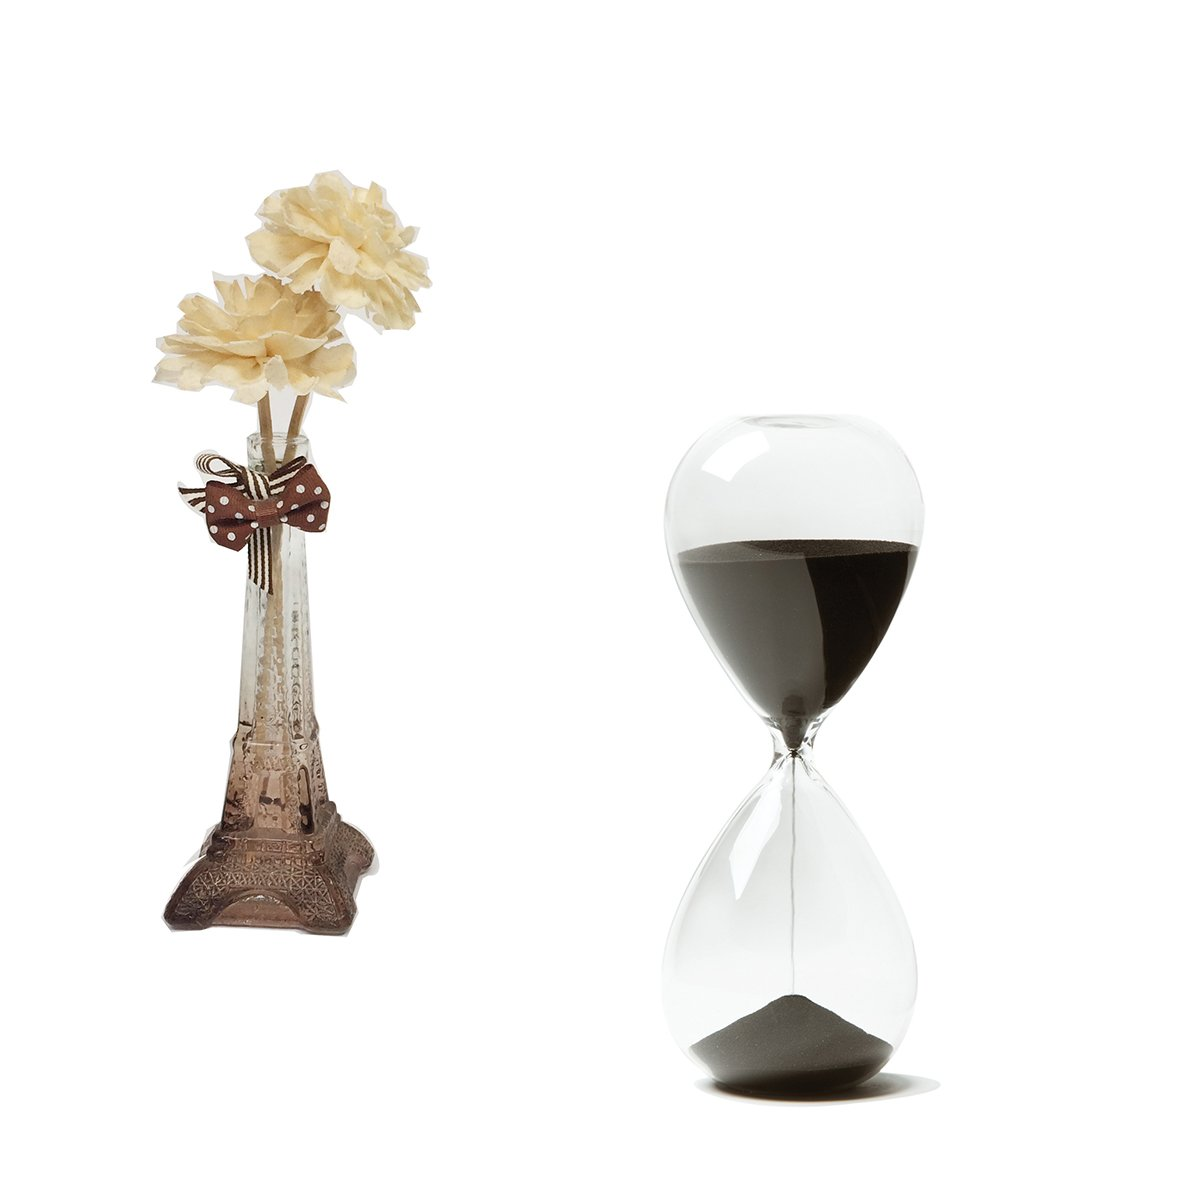 hovebeaty hourglass hand blown sand timer set for time management